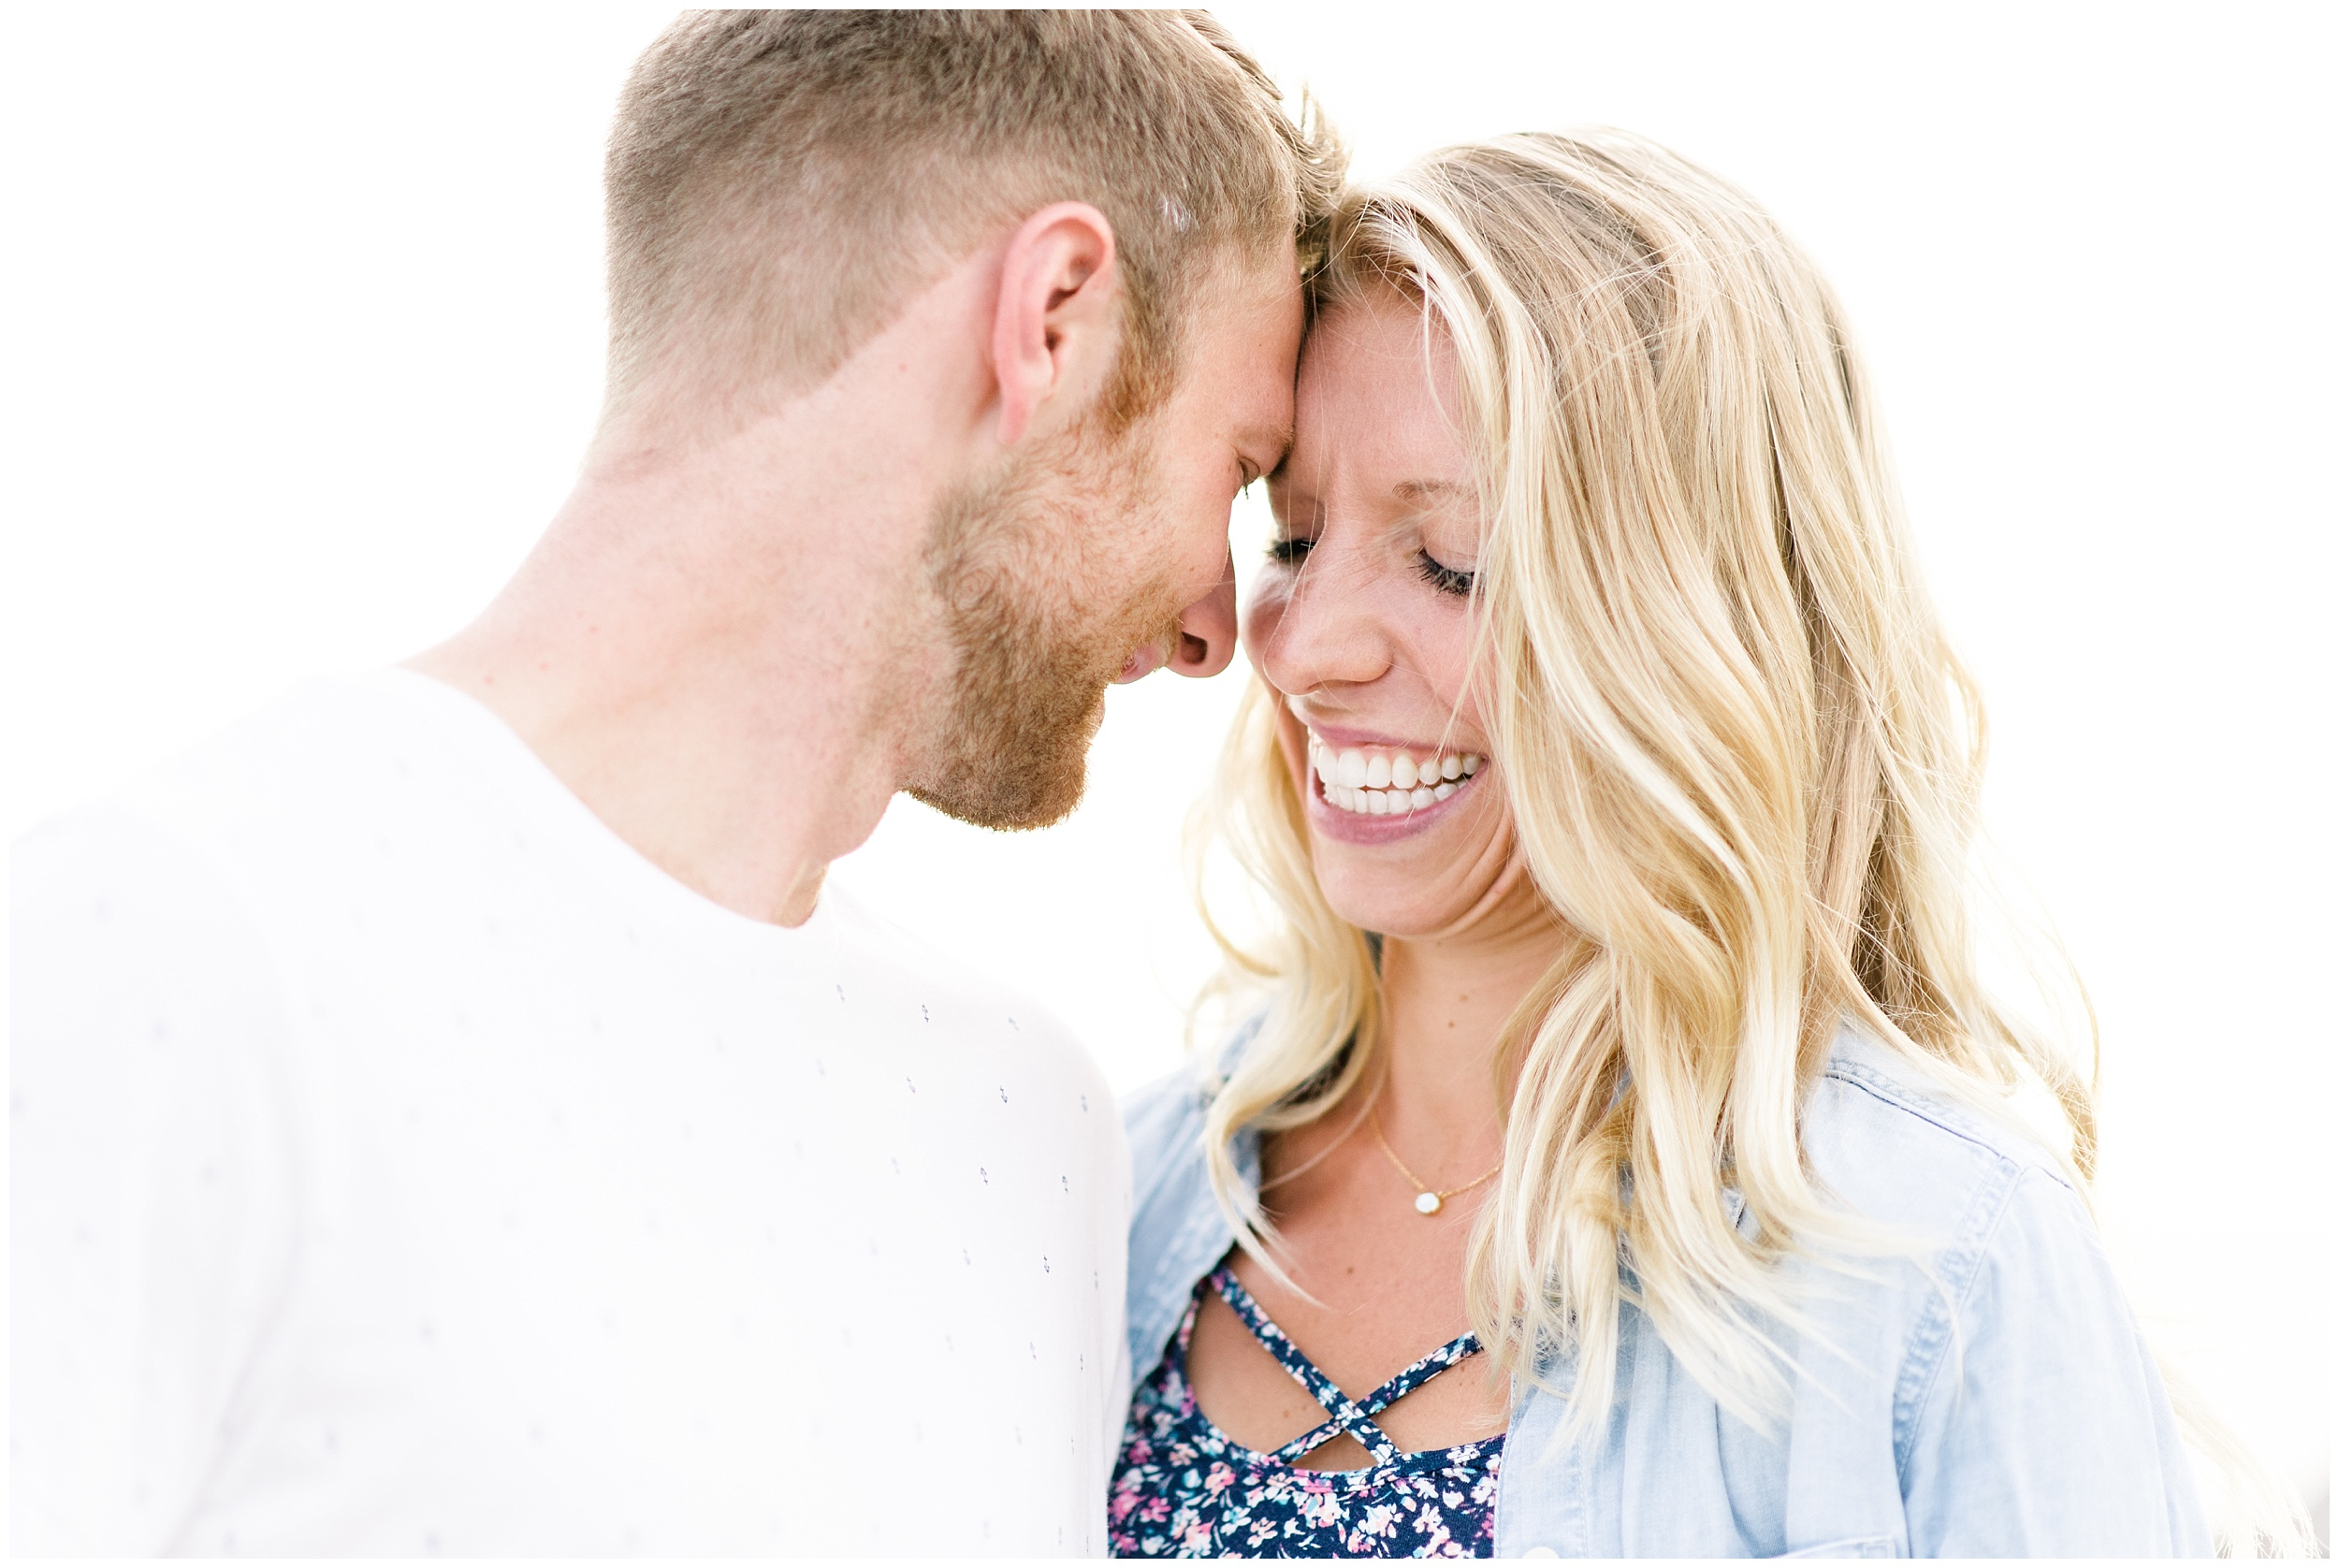 tenney-park-engagement-session-madison-wisconsin-bright-light-airy-wedding-photographer_0032.jpg